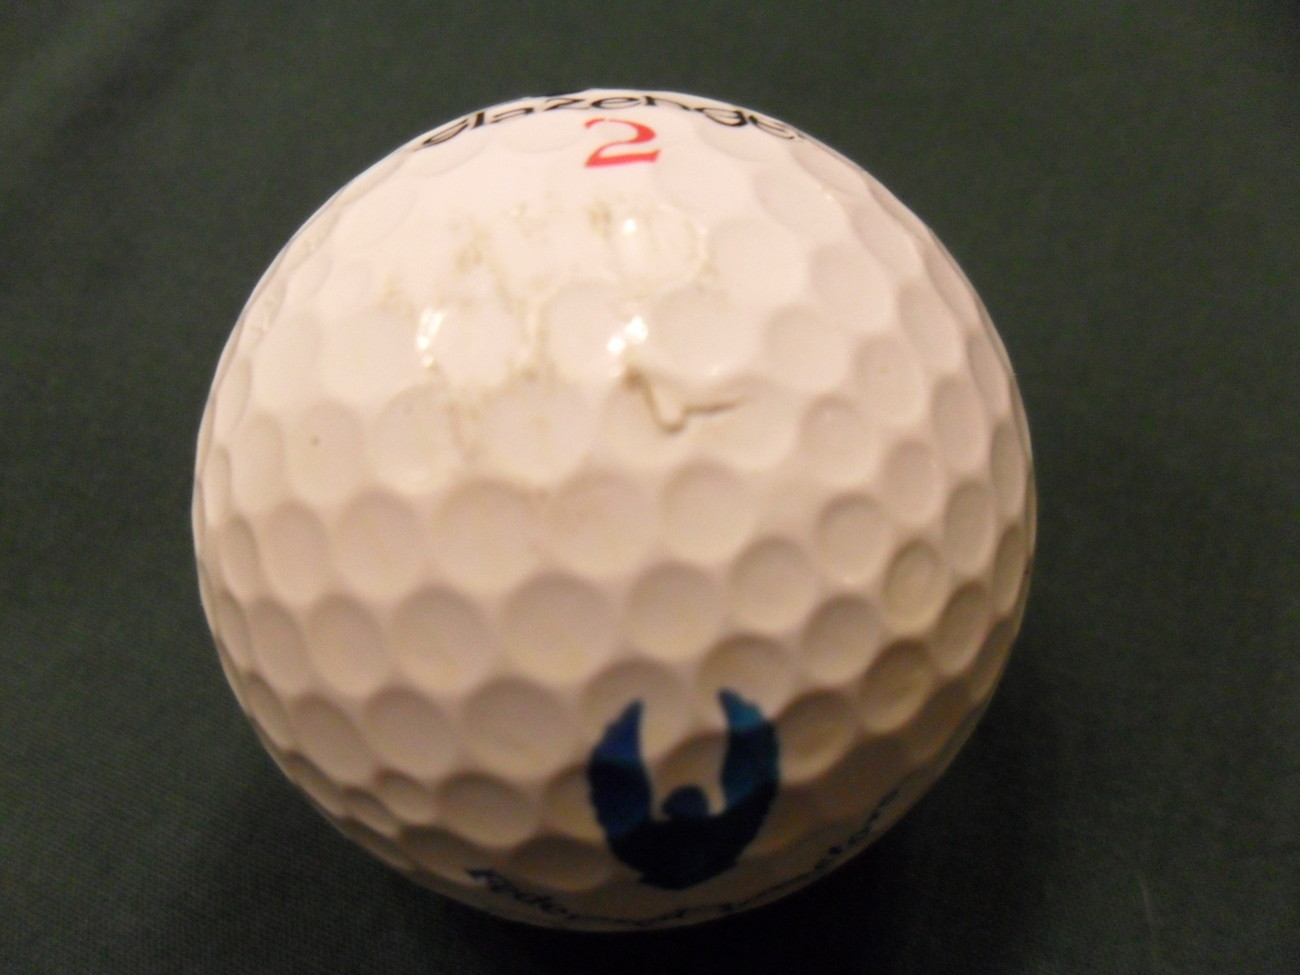 FEDERATED INVESTORS Logo Golf Ball SLAZENGER Very Nice FAST SHIPPING